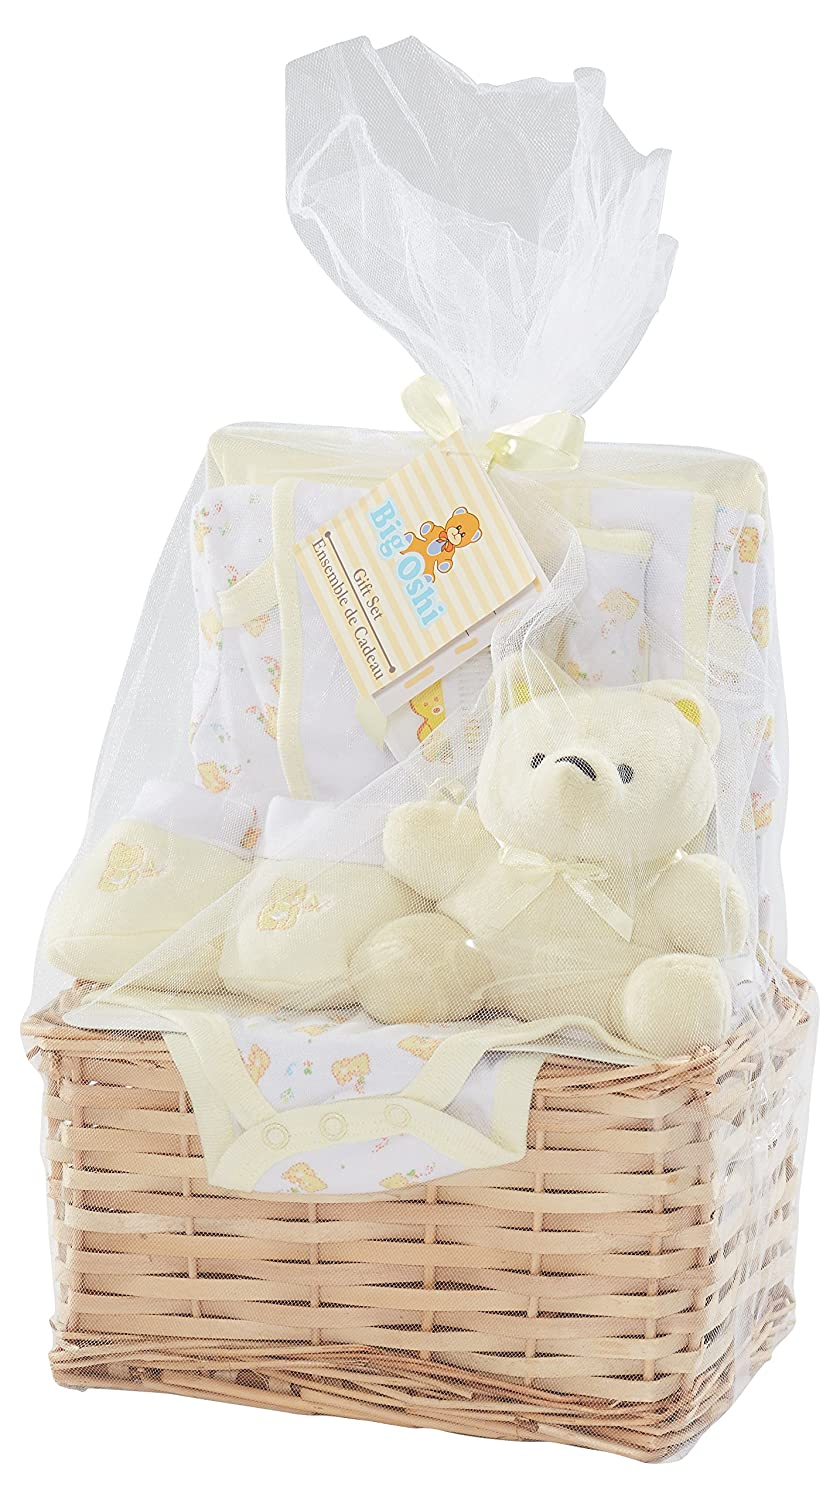 0//3 Month Baby Boy,Girl,Gift 7 Piece Gift Box Hamper Set Baby Shower Present